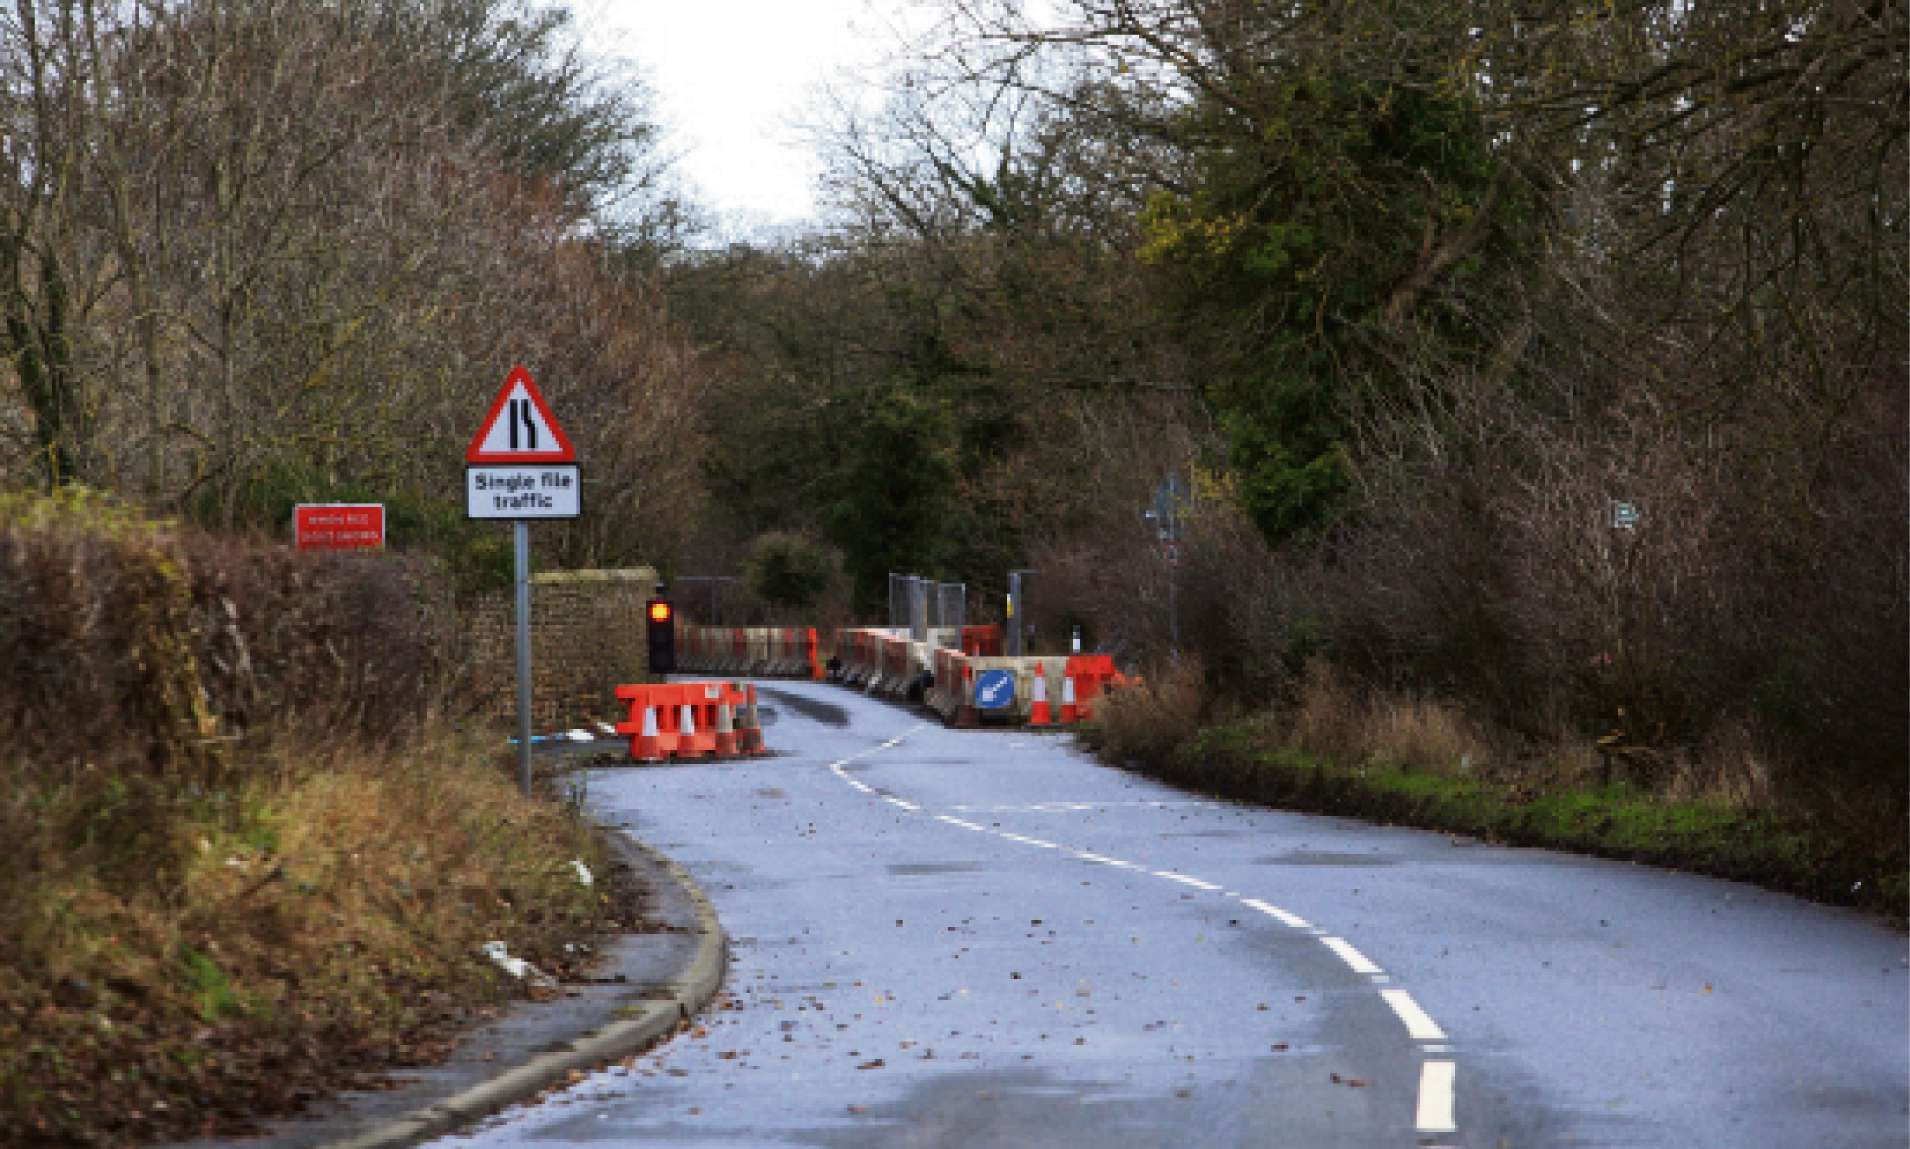 Work is underway to repair the landslip on the A67 but concerns have been raised over the danger posed by the diversion route's overgrown verges